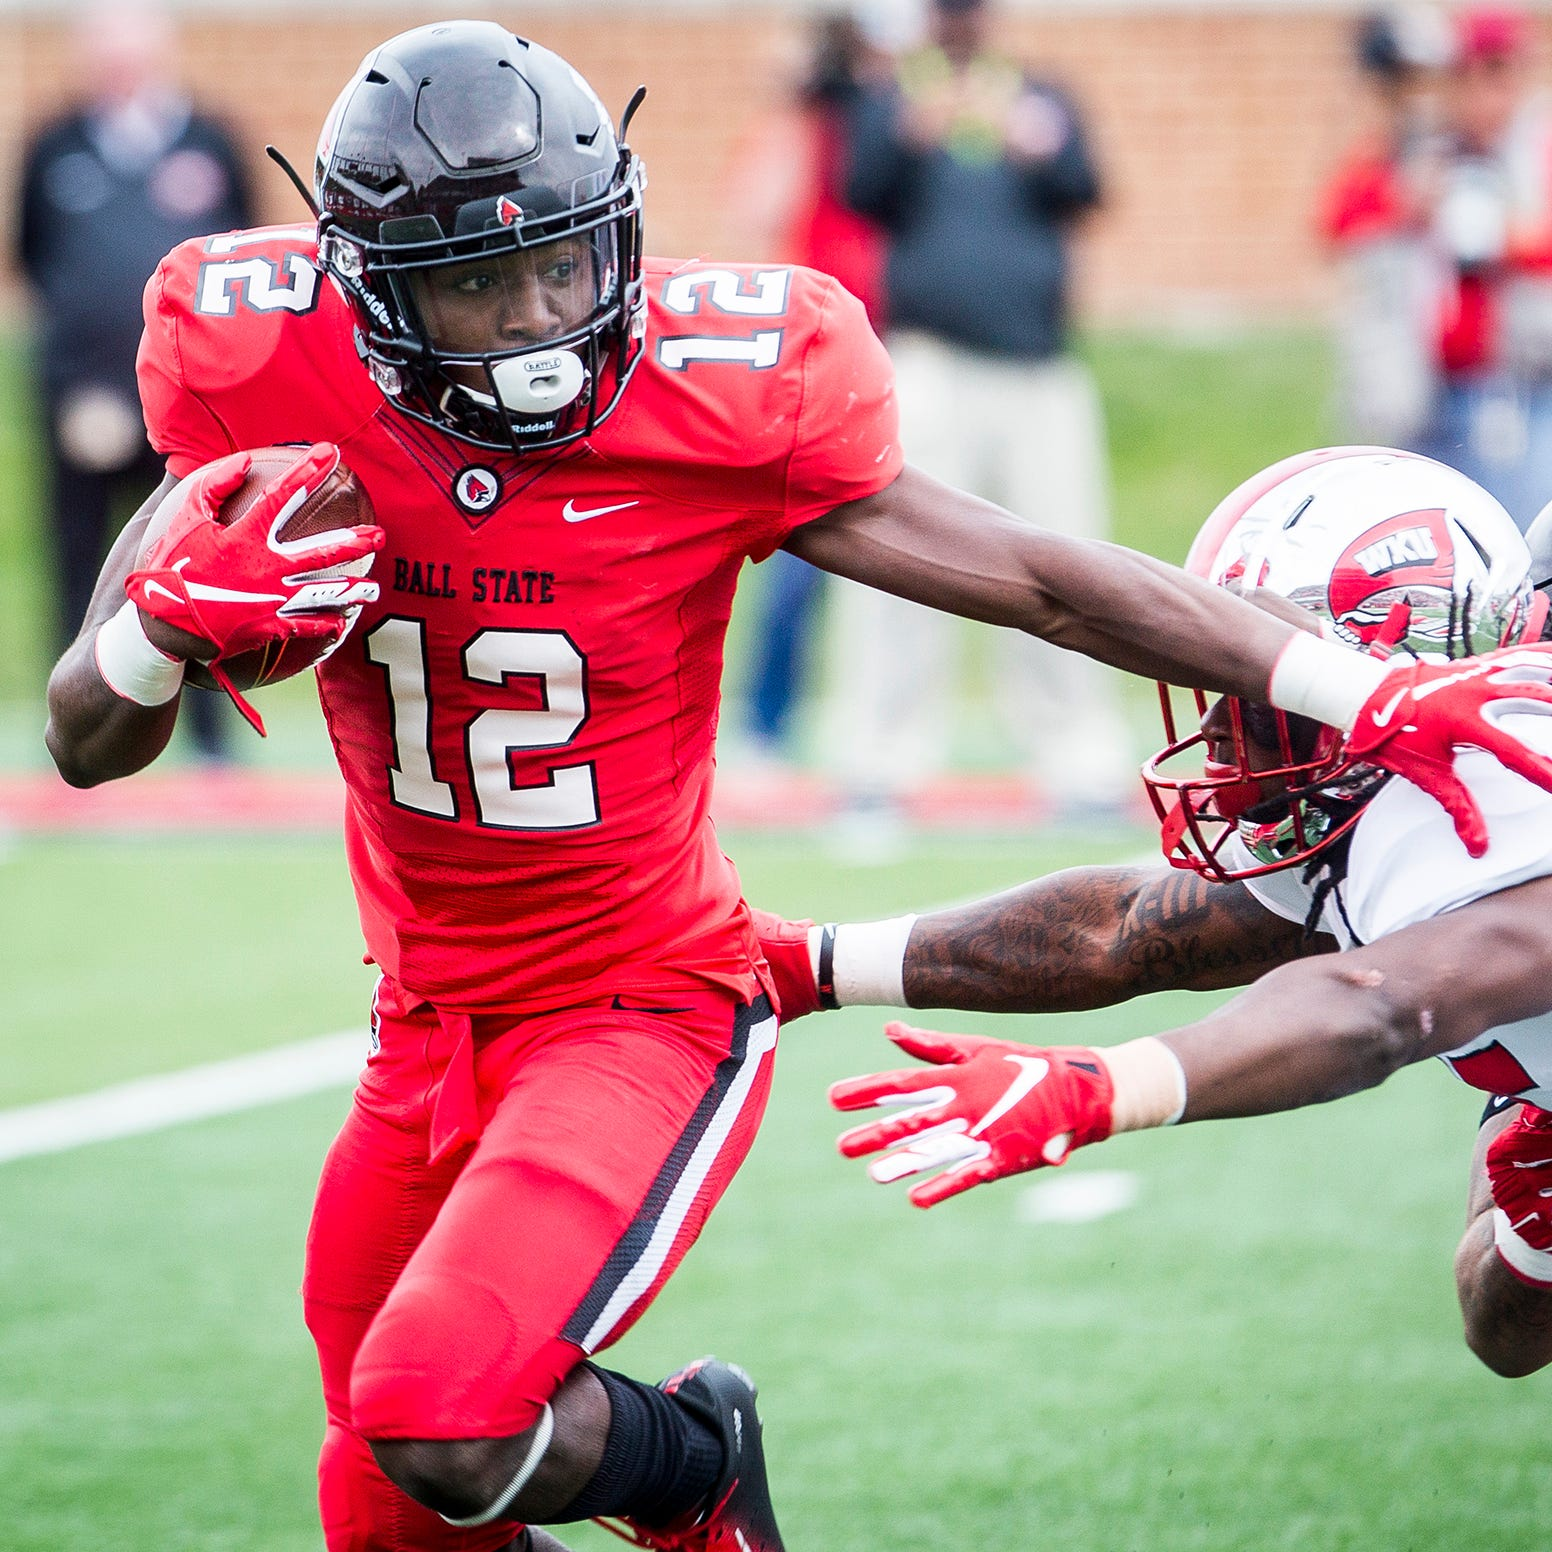 Ball State ends non-conference play with heartbreaking loss